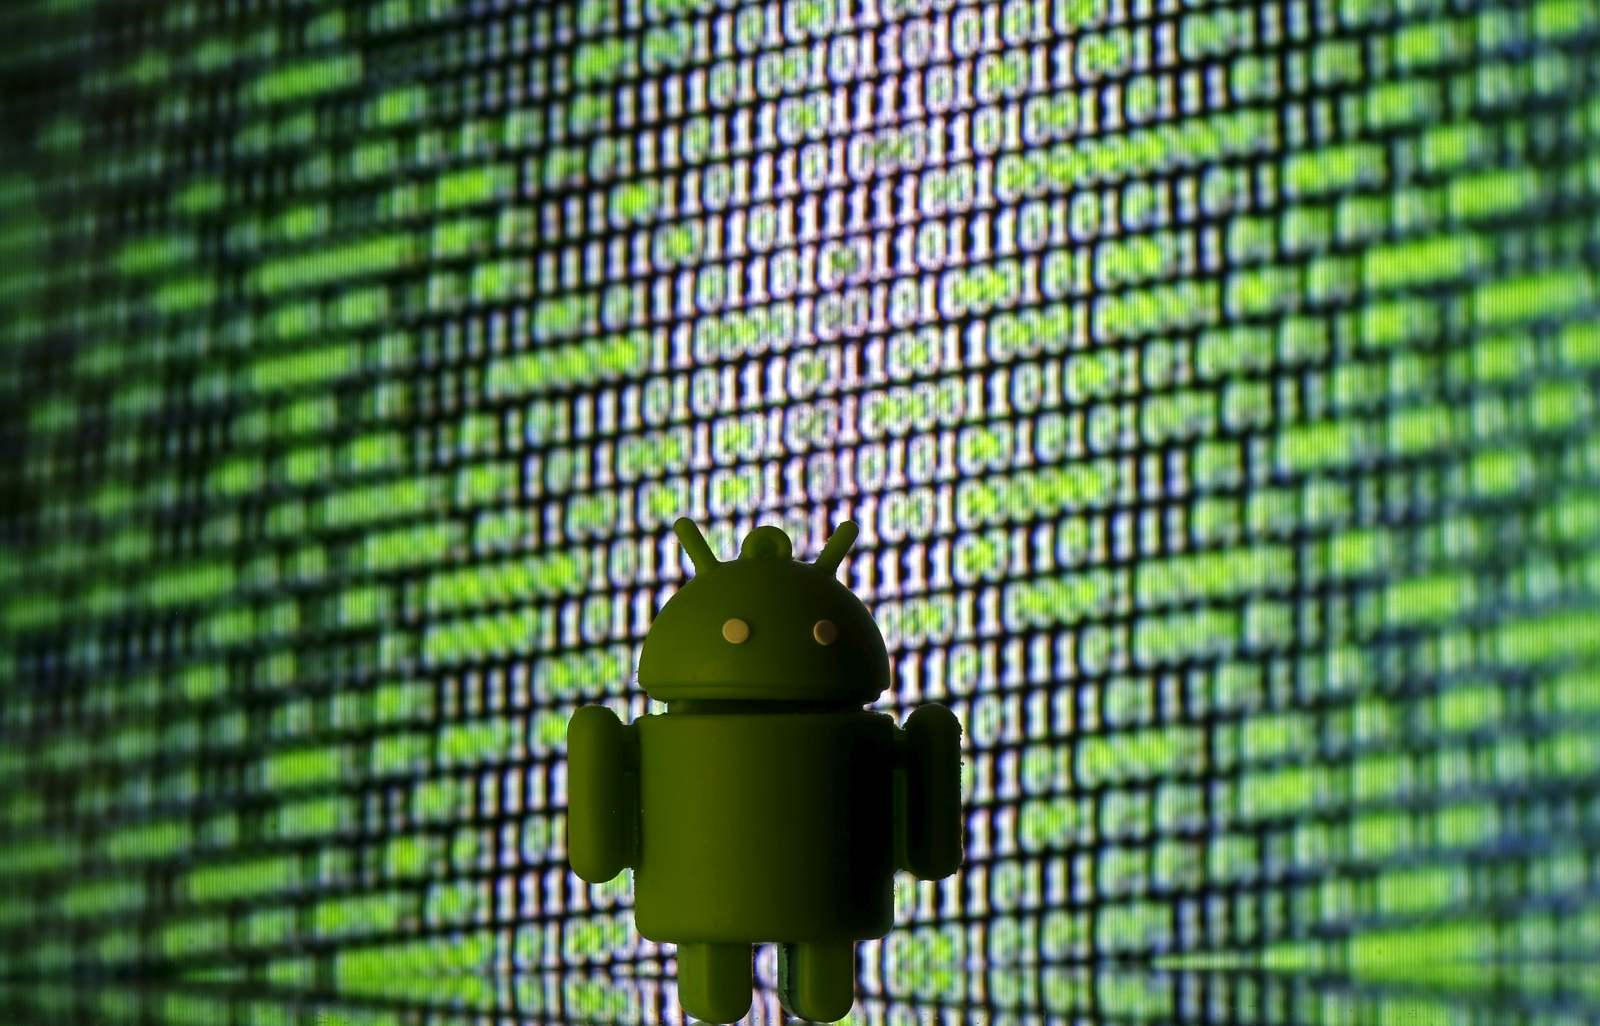 New Android malware uses code injection to control devices